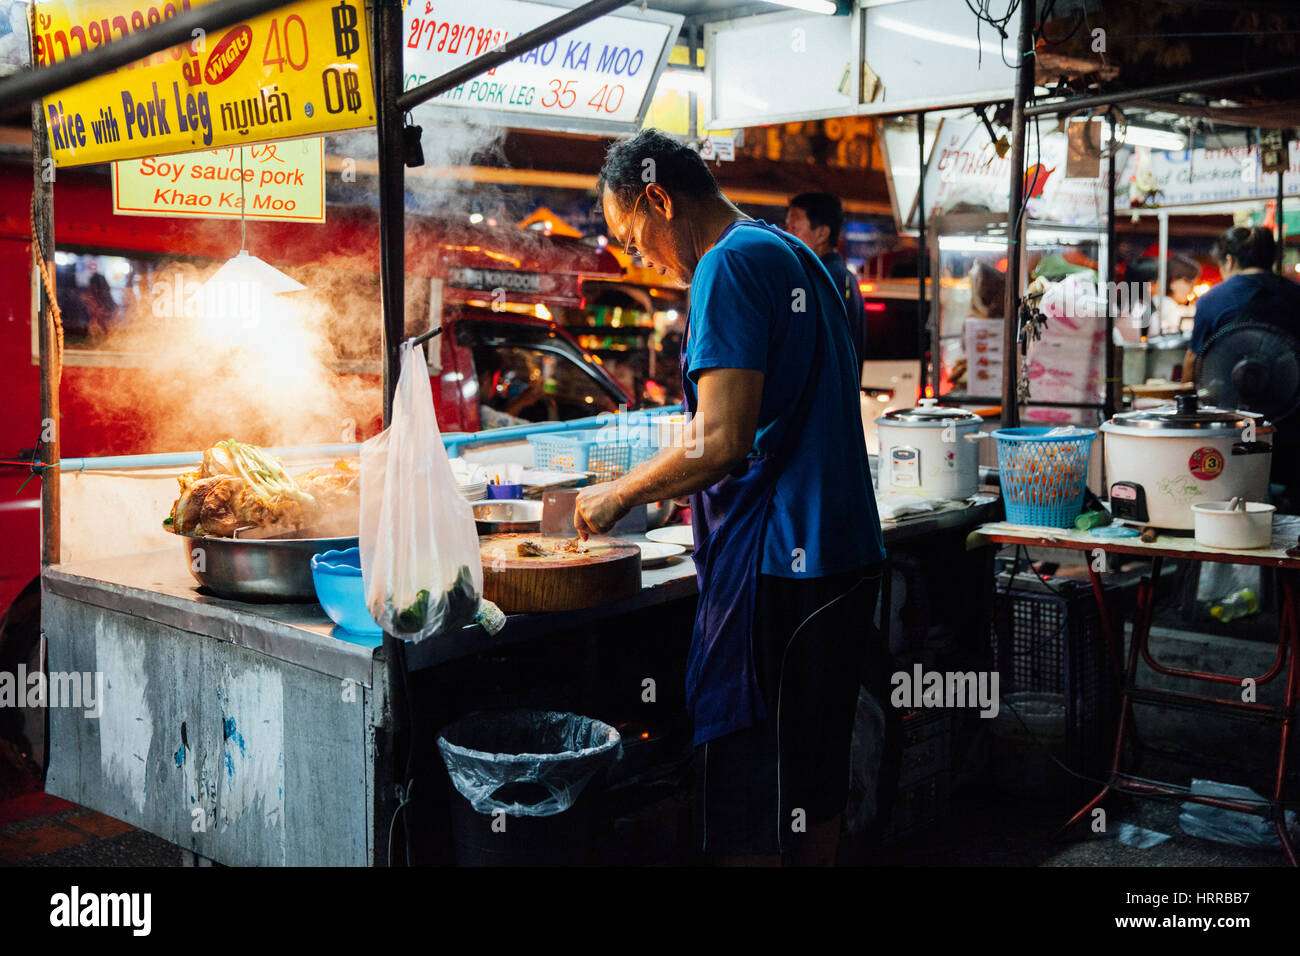 Chiang Mai, Thailand - August 27, 2016:  Man cooking food at the Saturday Night Market on August 27, 2016 in Chiang - Stock Image